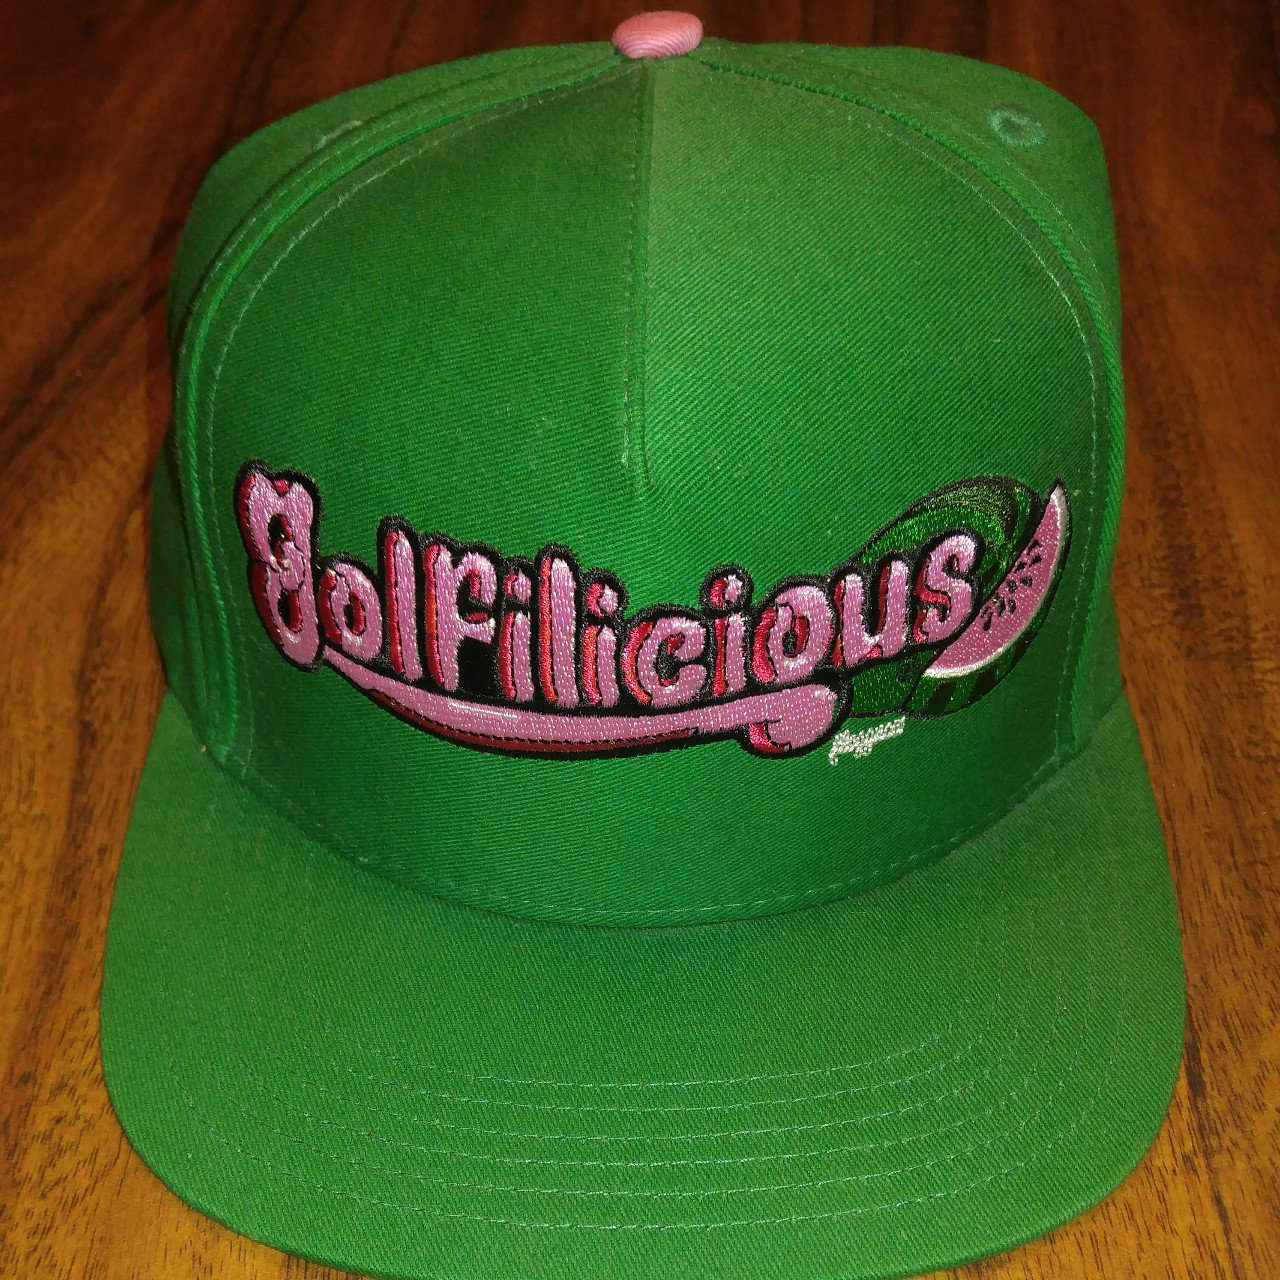 Tyler the Creator golf Wang Golfilicious green snapback new - Depop 27b2b0b86b2